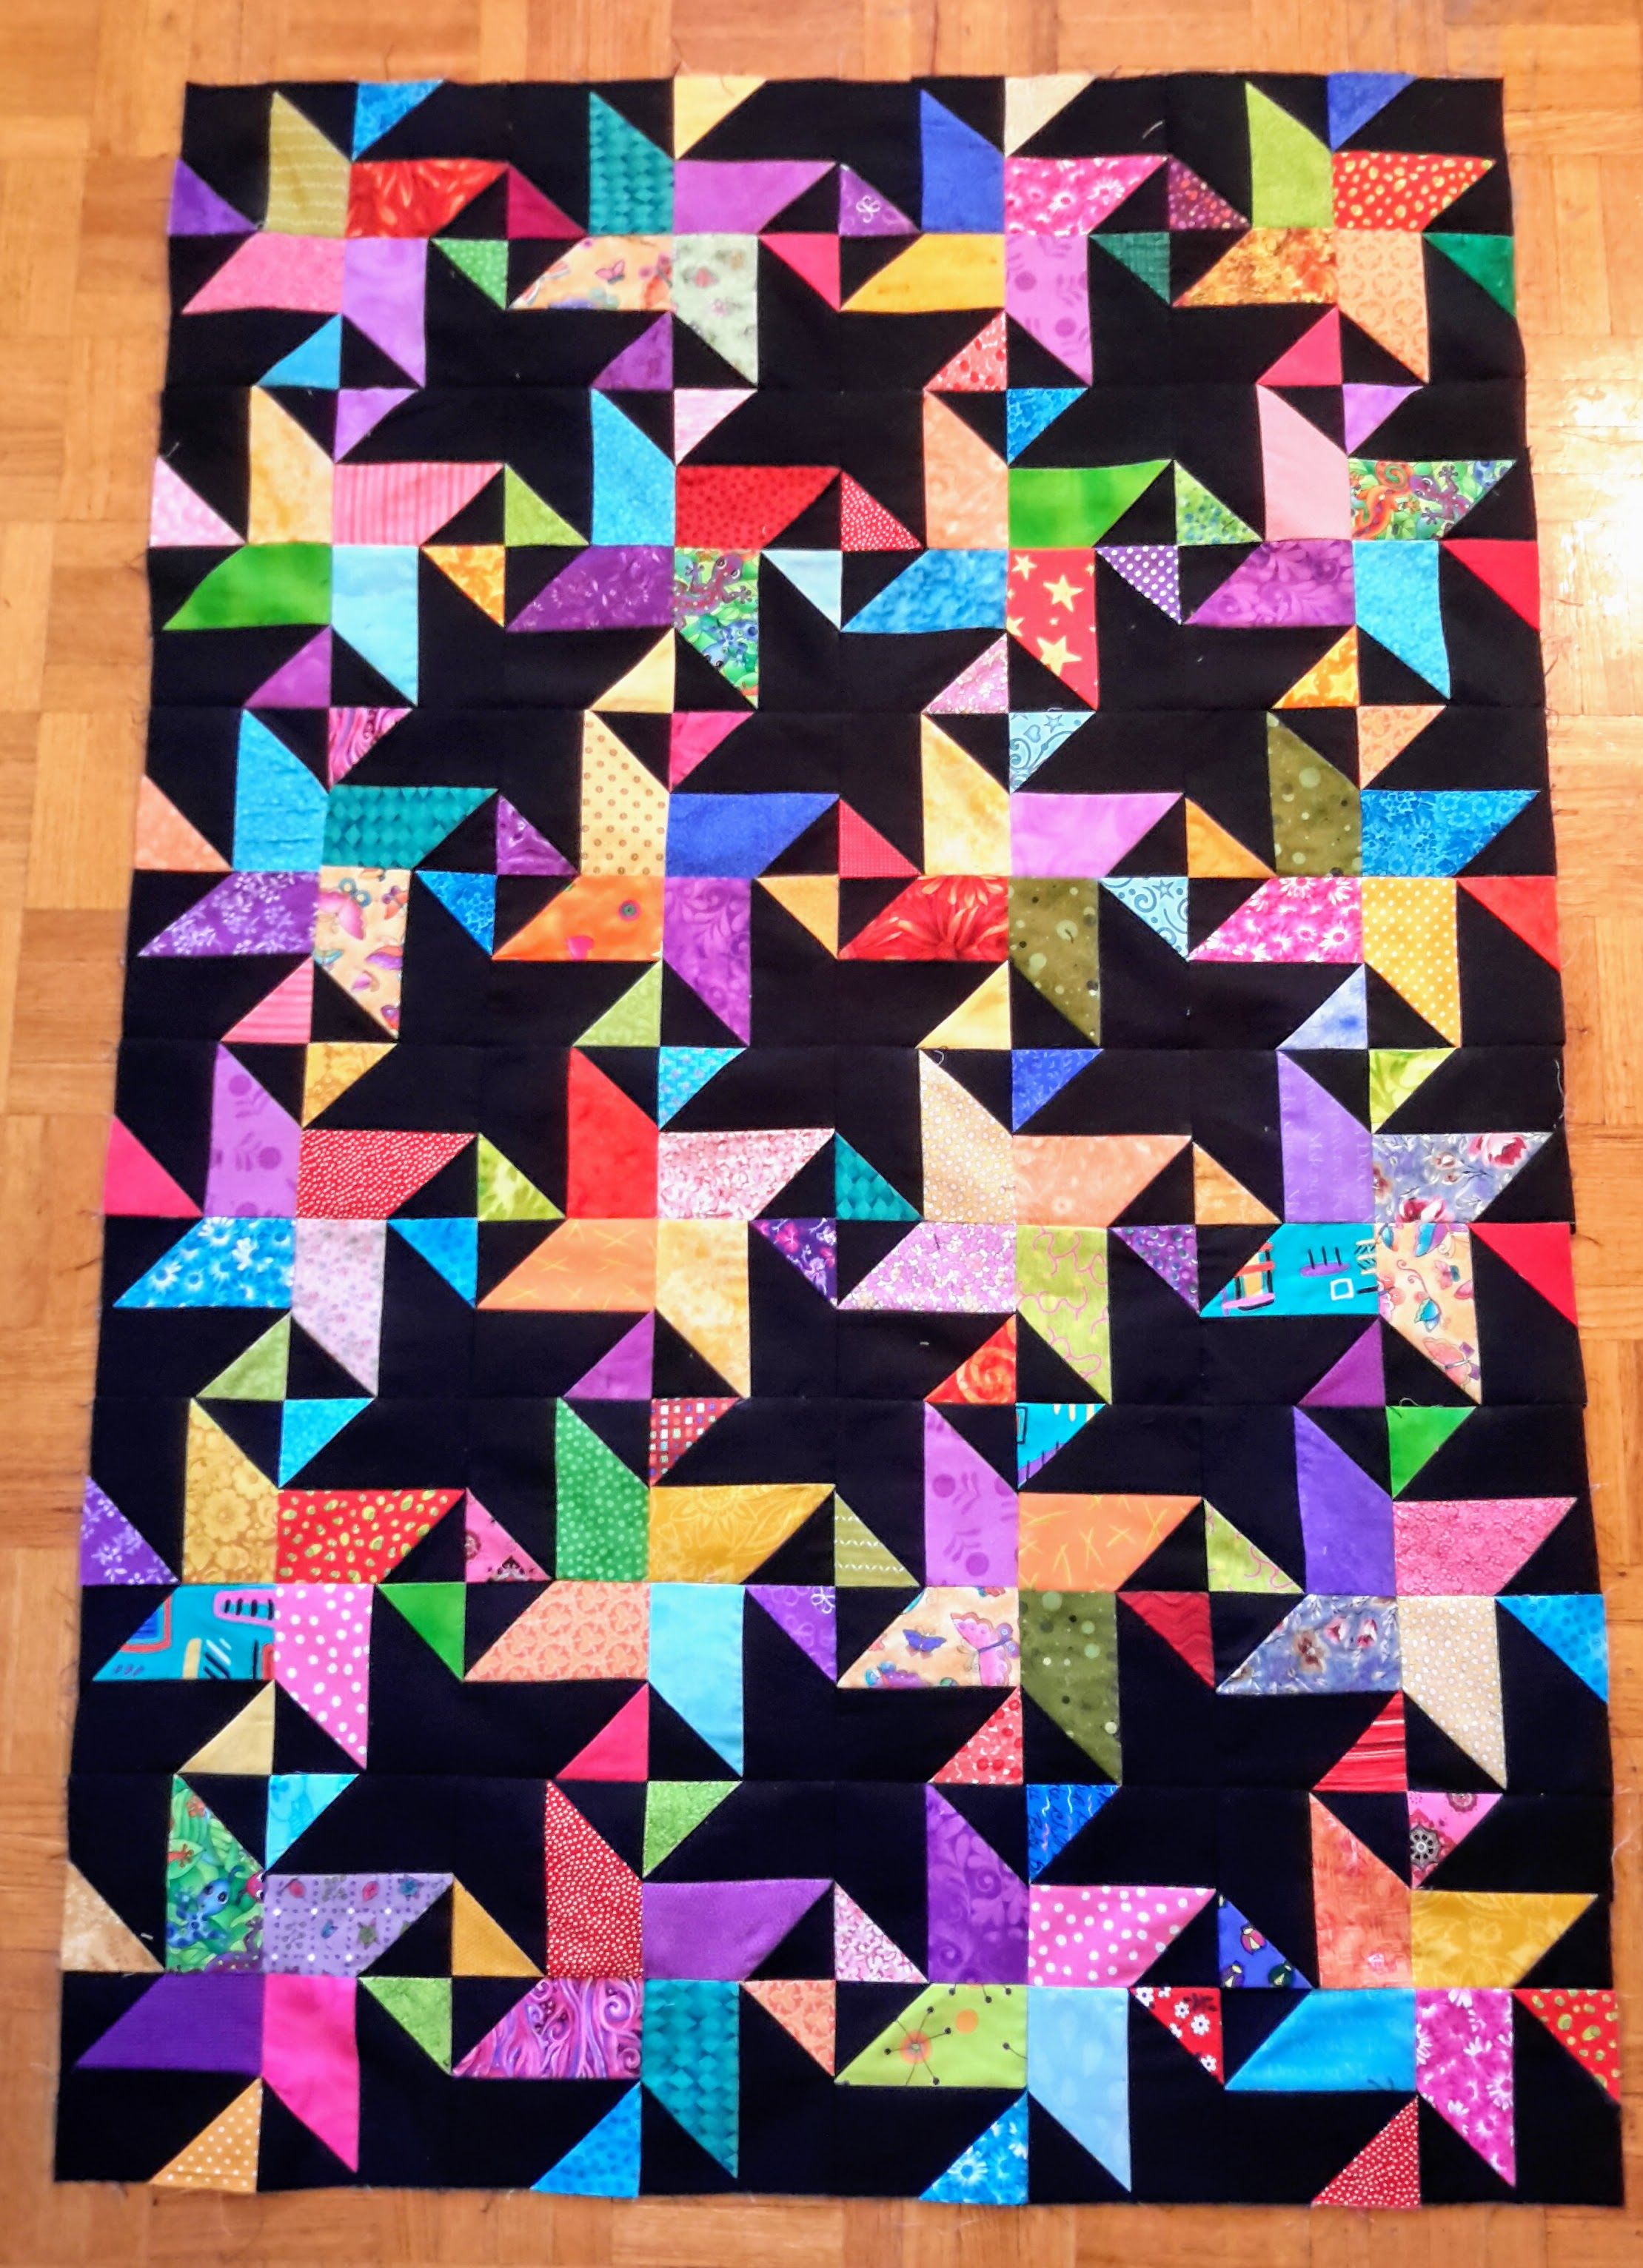 Star Struck quilt designed by Bonnie Hunter